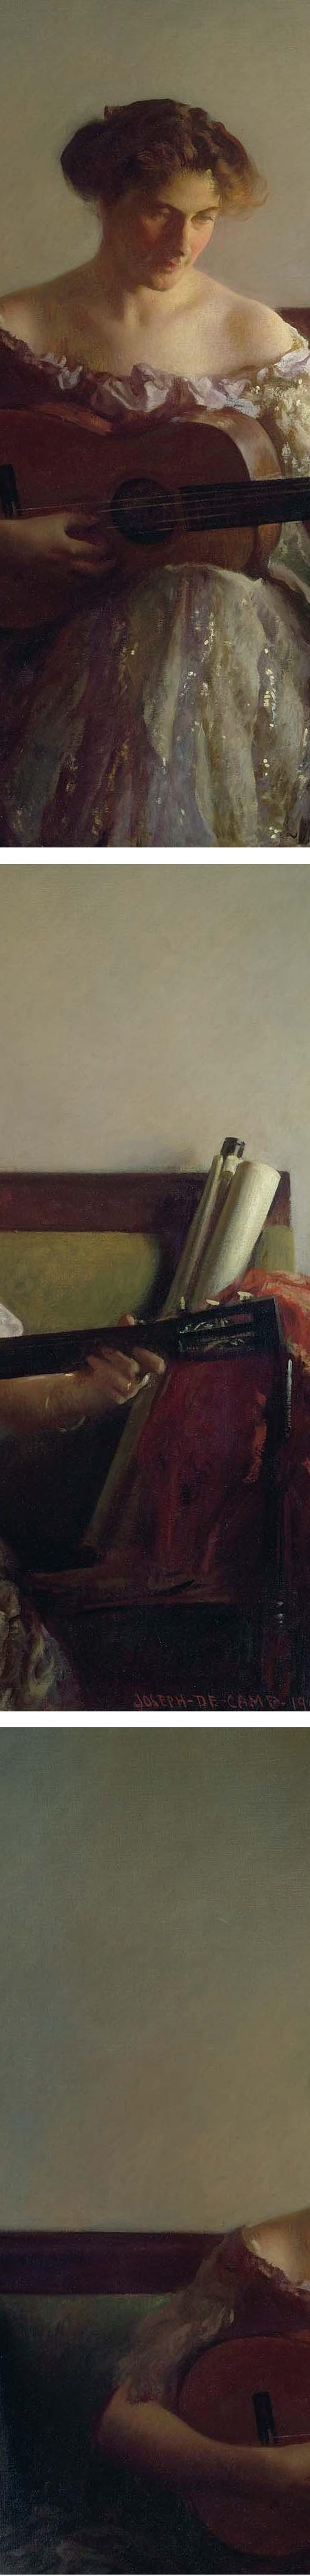 The Guitar Player, Joseph Rodefer DeCamp (details)